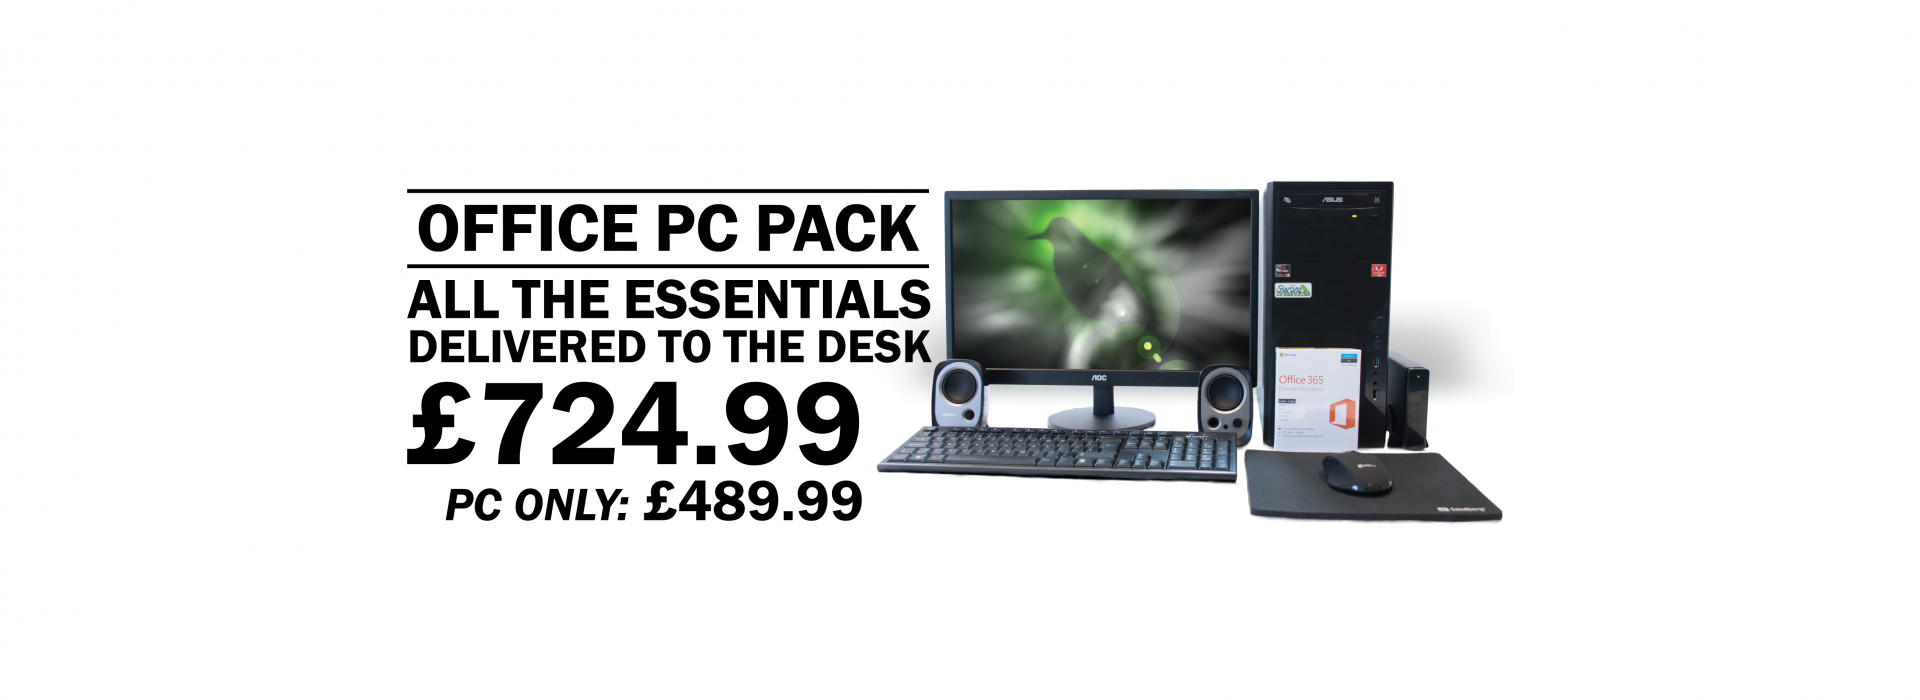 Office PC Pack, All the essentials delivered to the desk, £724.99, PC Only: 489.99